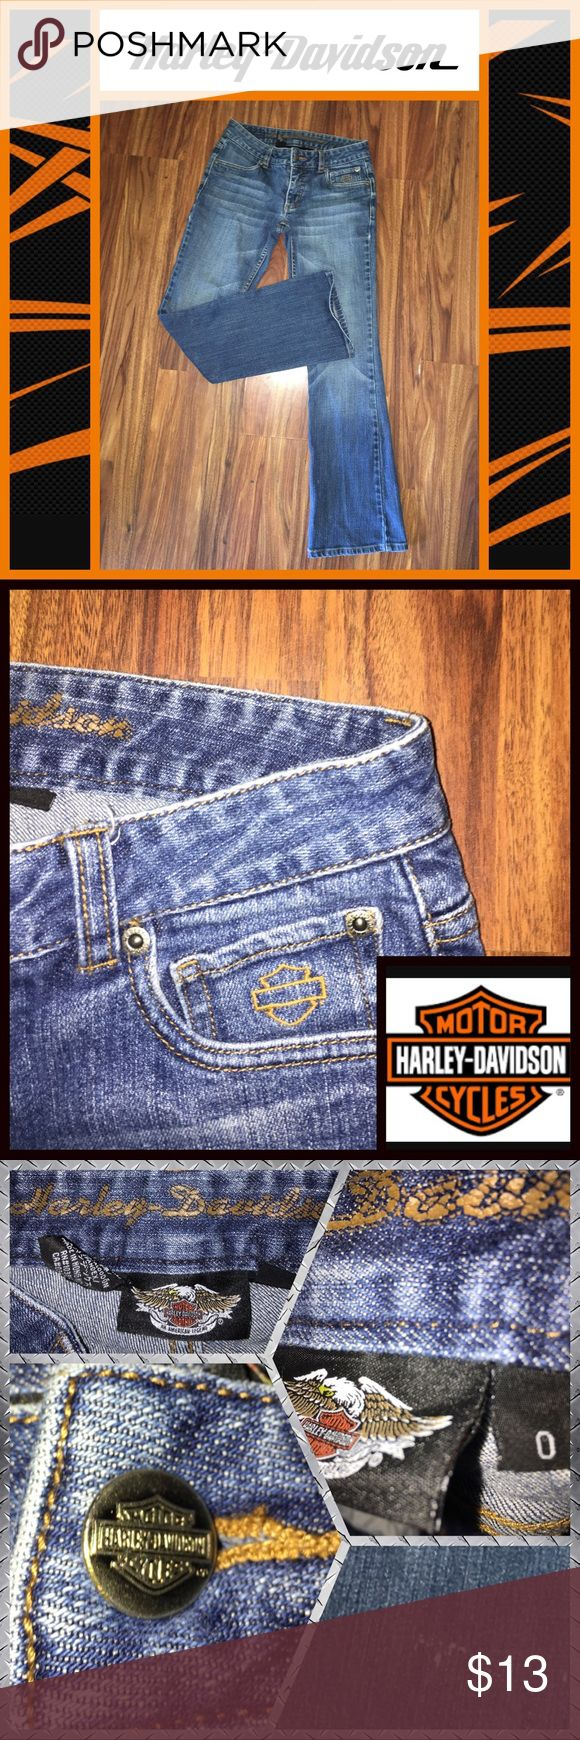 🖤👖Harley Davidson jeans👖🖤 👖Harley Davidson size 0 jeans in great condition🖤Slight Bootcut hem👖Small bleach spot on right leg that is barely visible🖤Embroidered logo detail on back and front pockets👖 Harley-Davidson Jeans Boot Cut